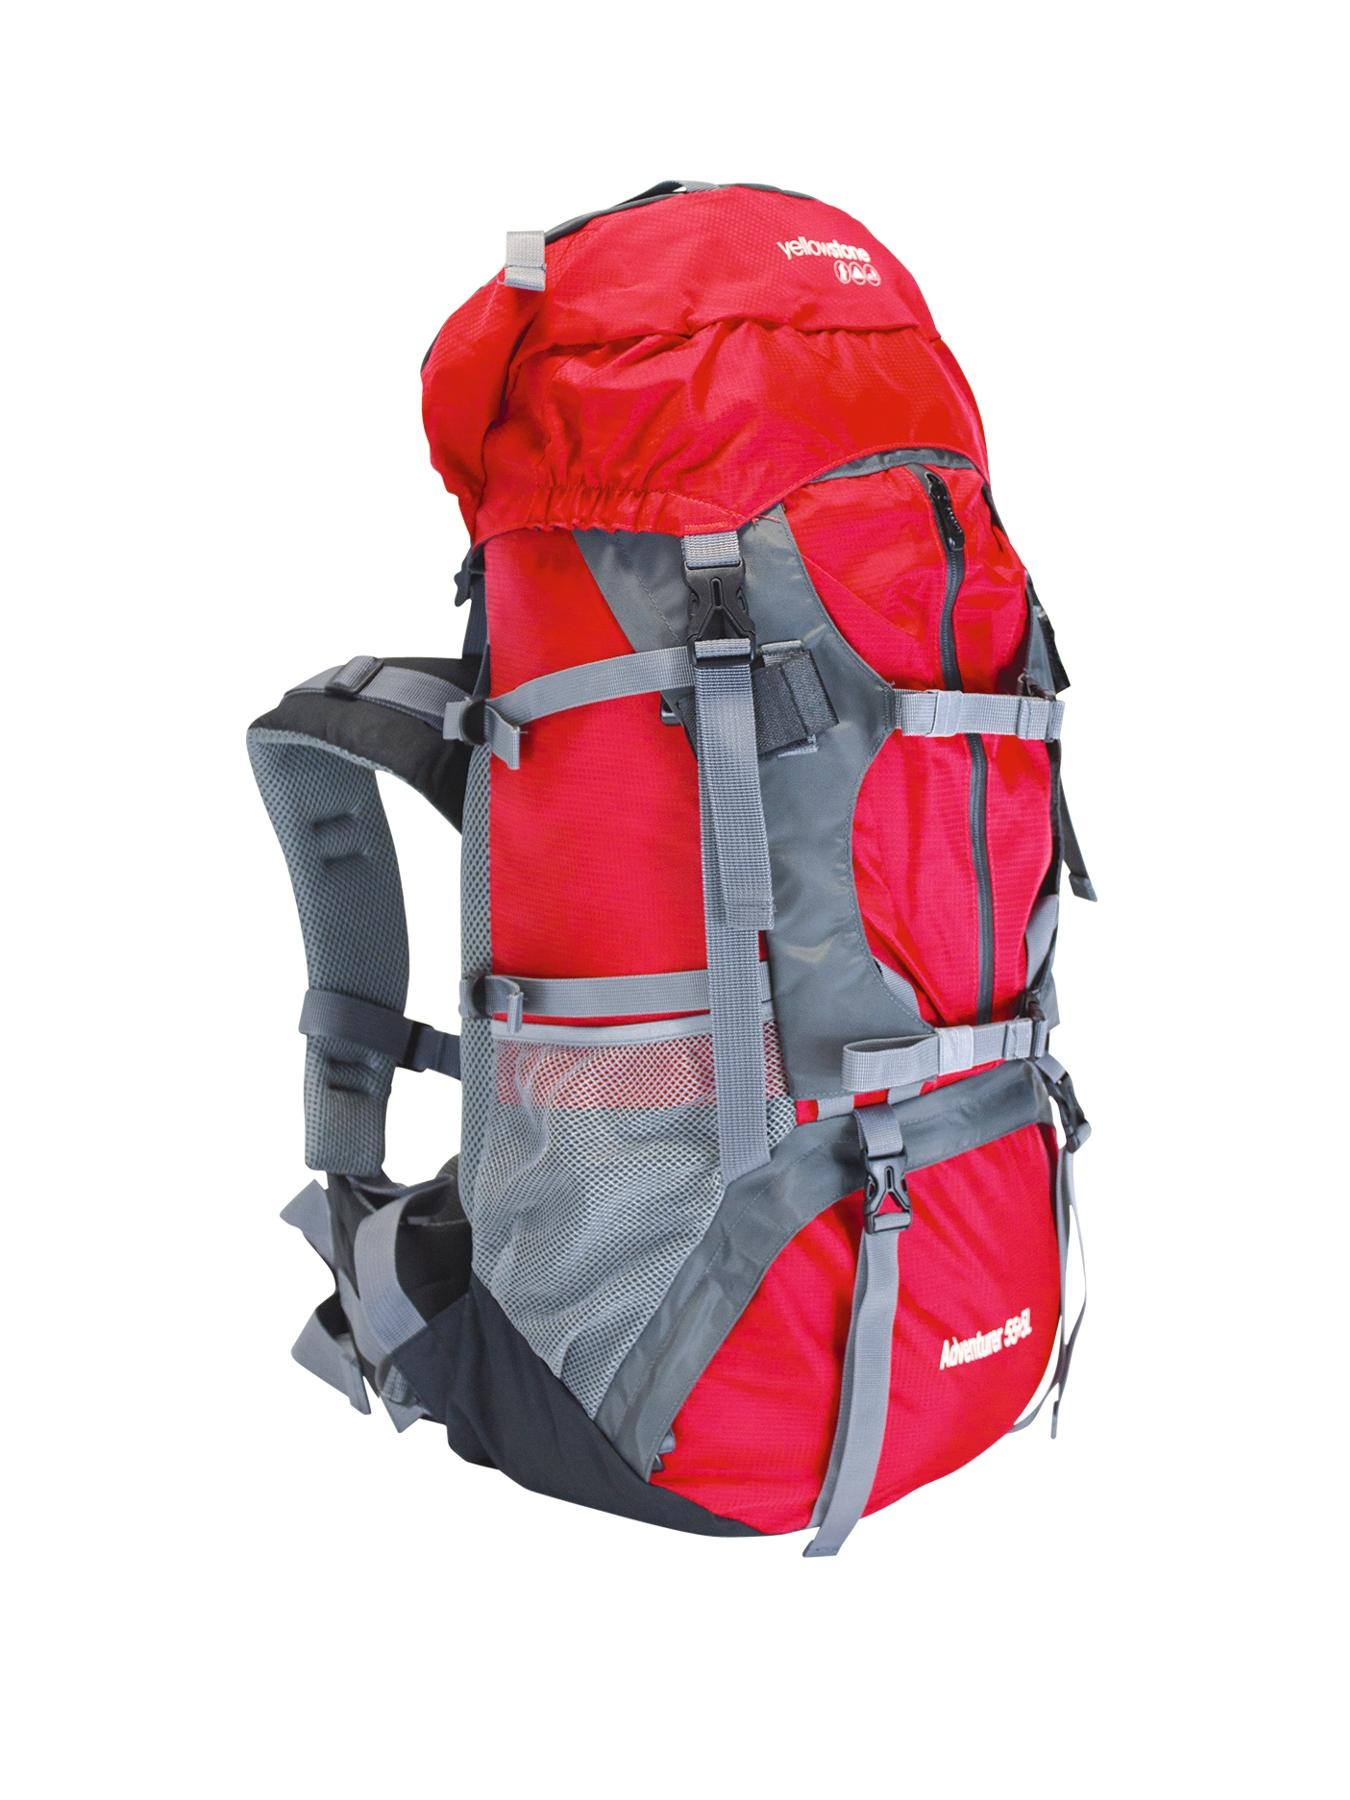 Adventurer 55 + 5-Litre Ruck Sack - Red/Grey